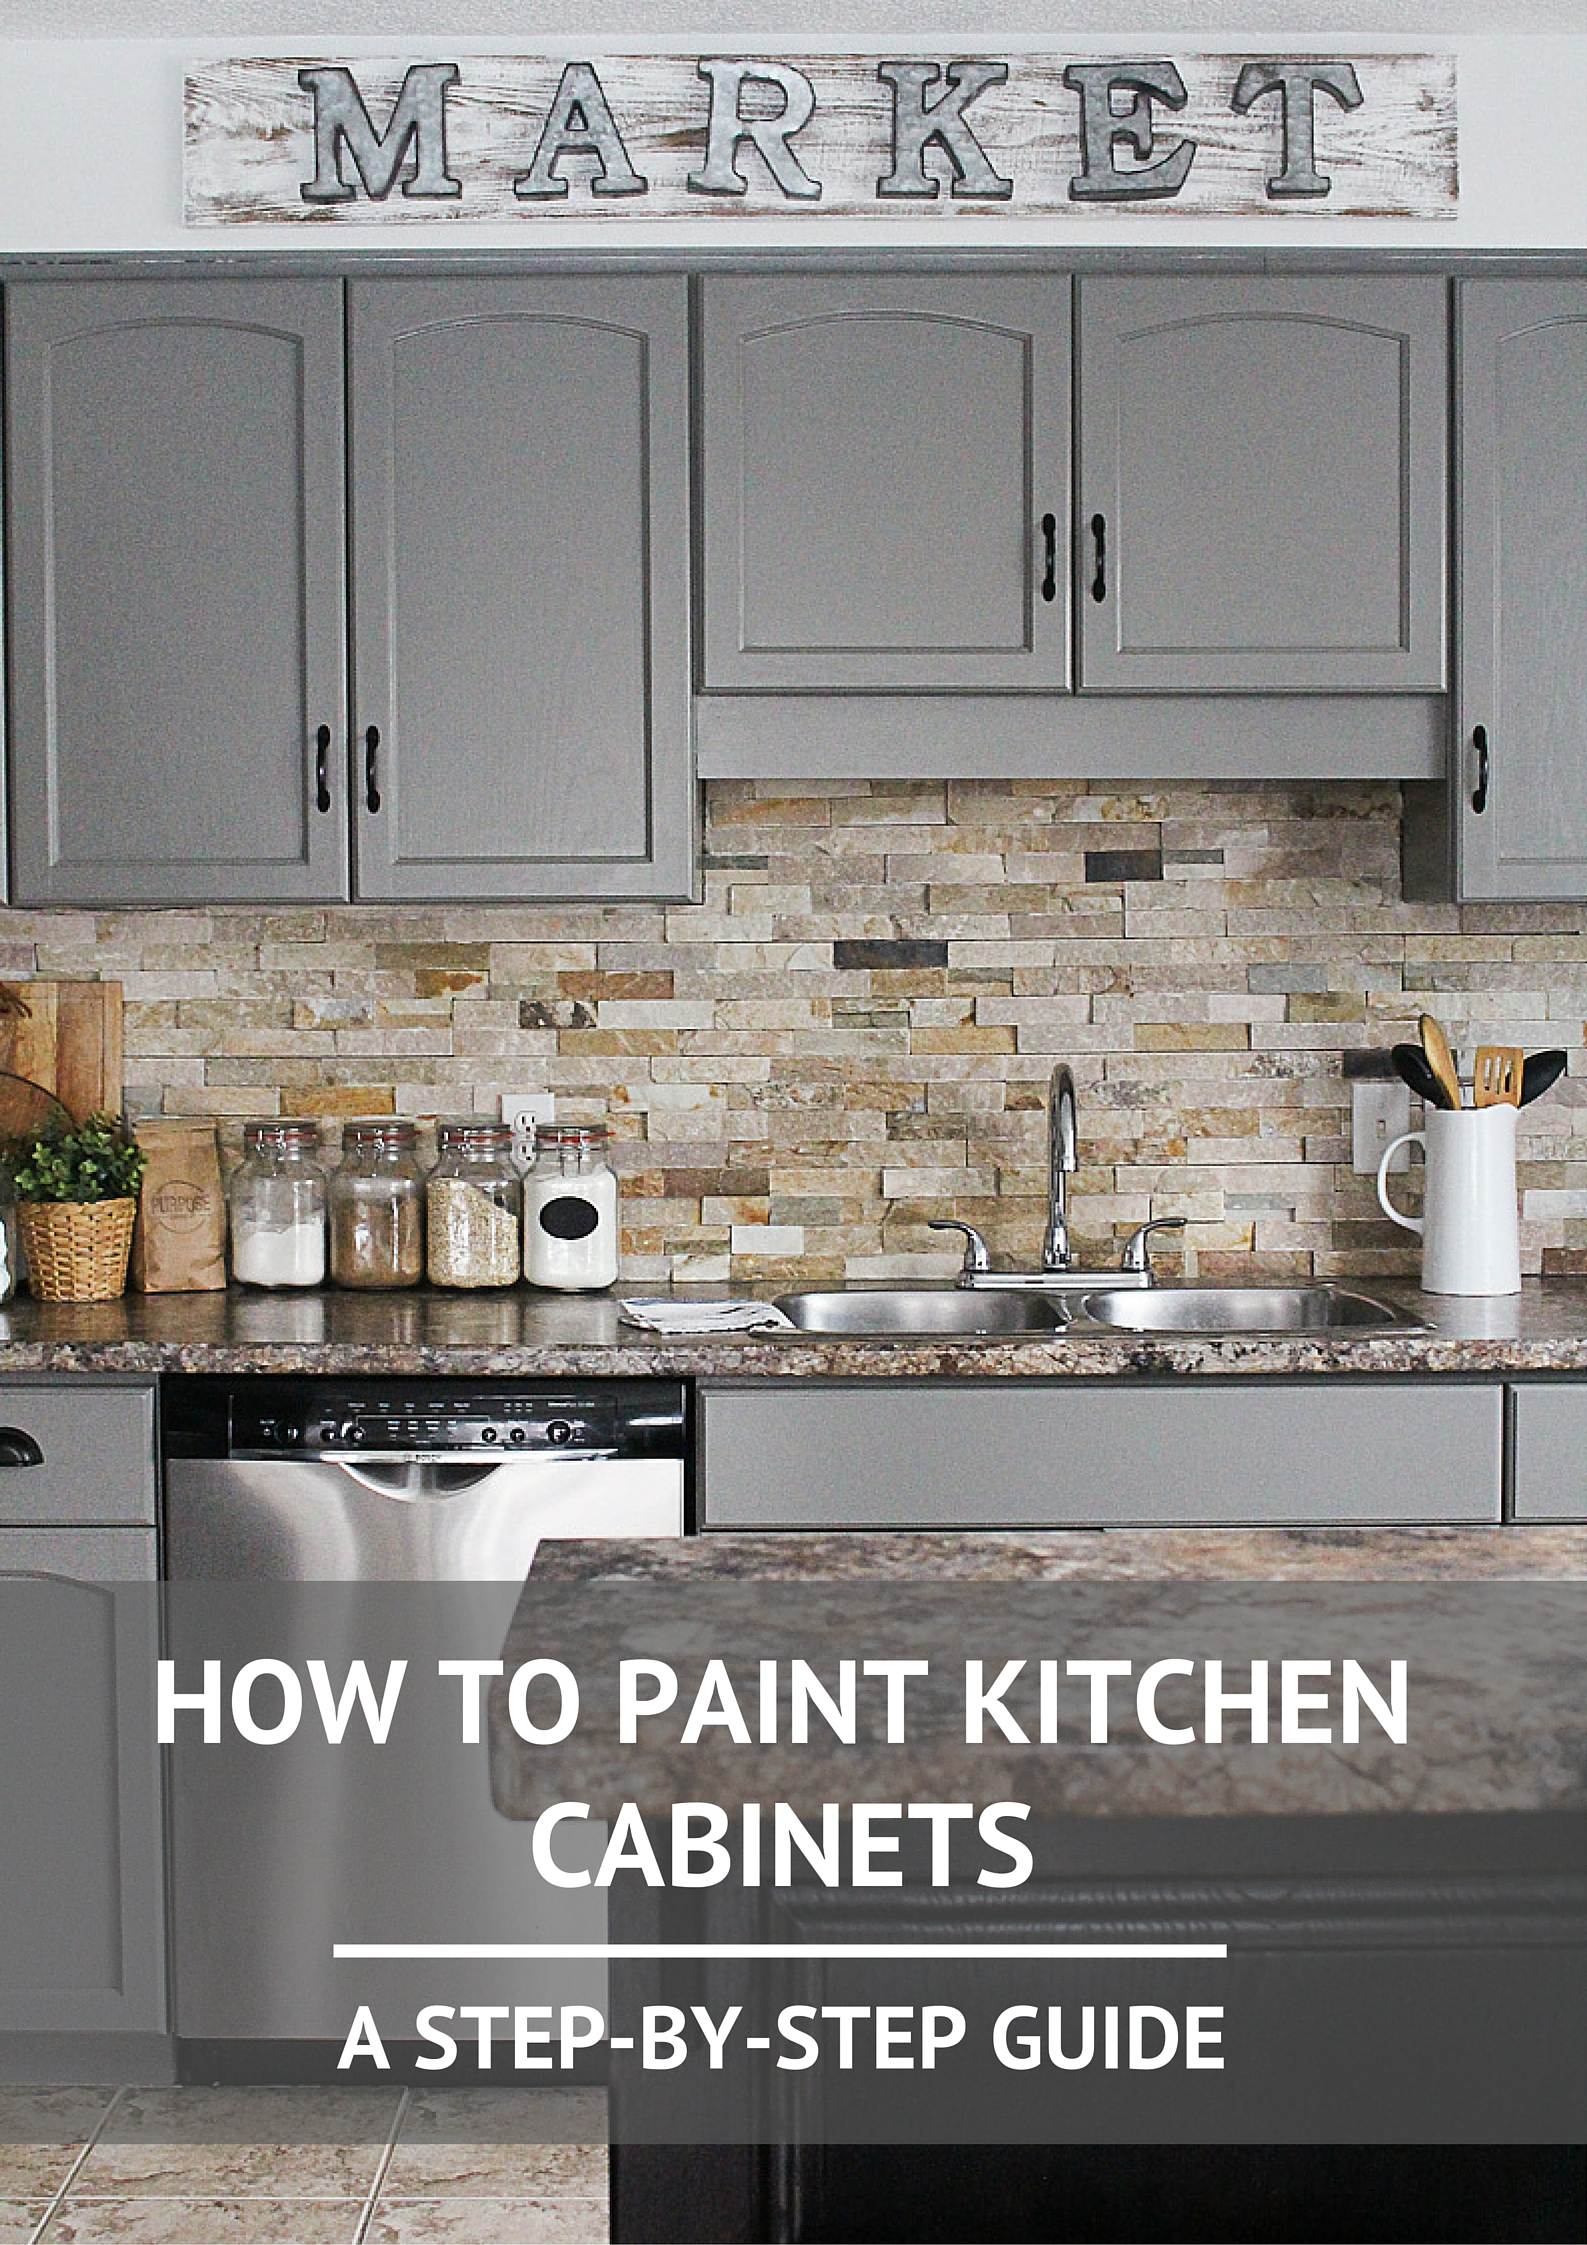 & How to Paint Kitchen Cabinets